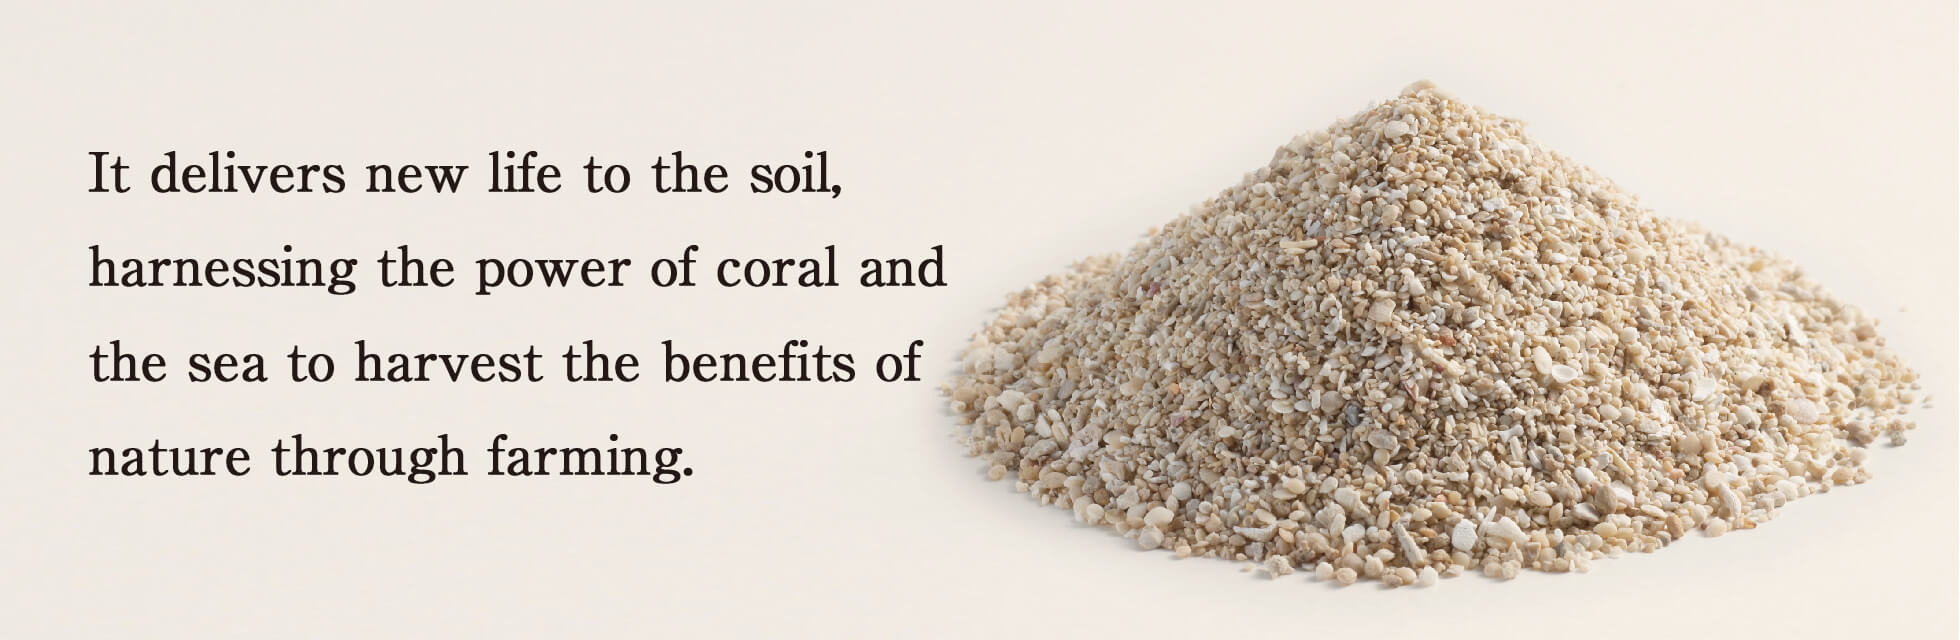 It delivers new life to the soil, harnessing the power of coral and the sea to harvest the benefits of nature through farming.